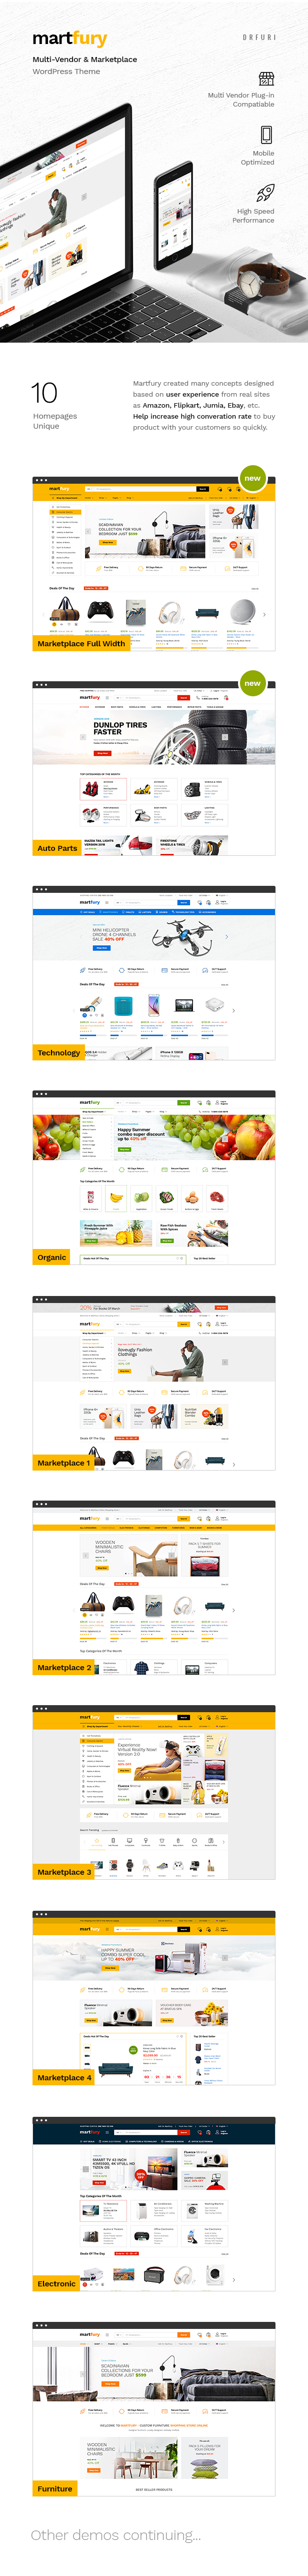 martfury wp 010 - Martfury – WooCommerce Marketplace WordPress Theme